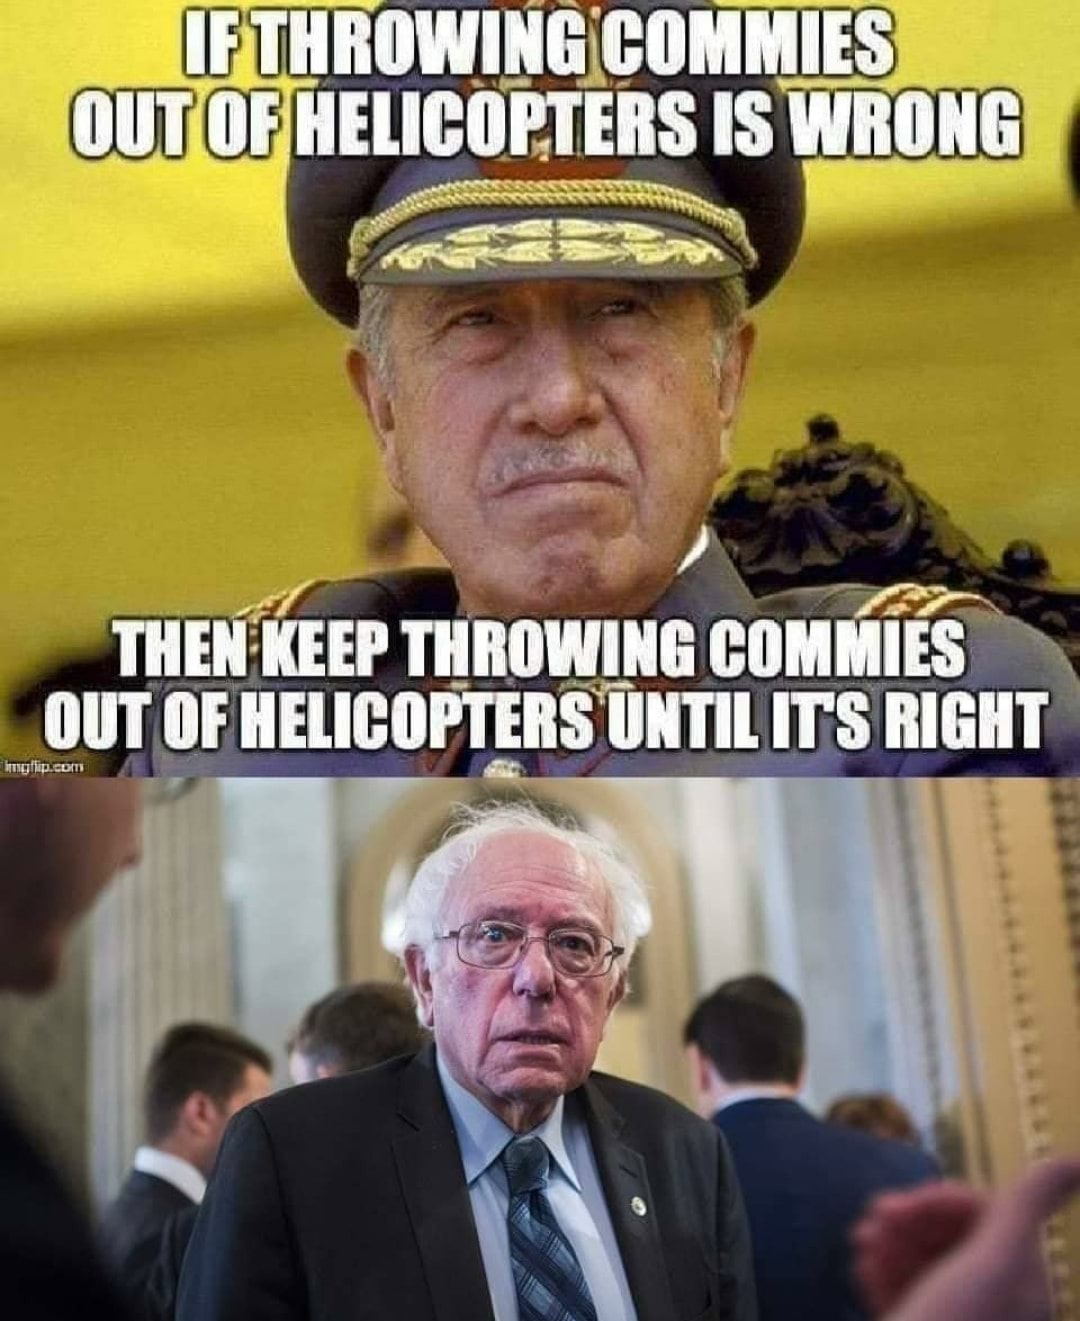 Commies and helicopters